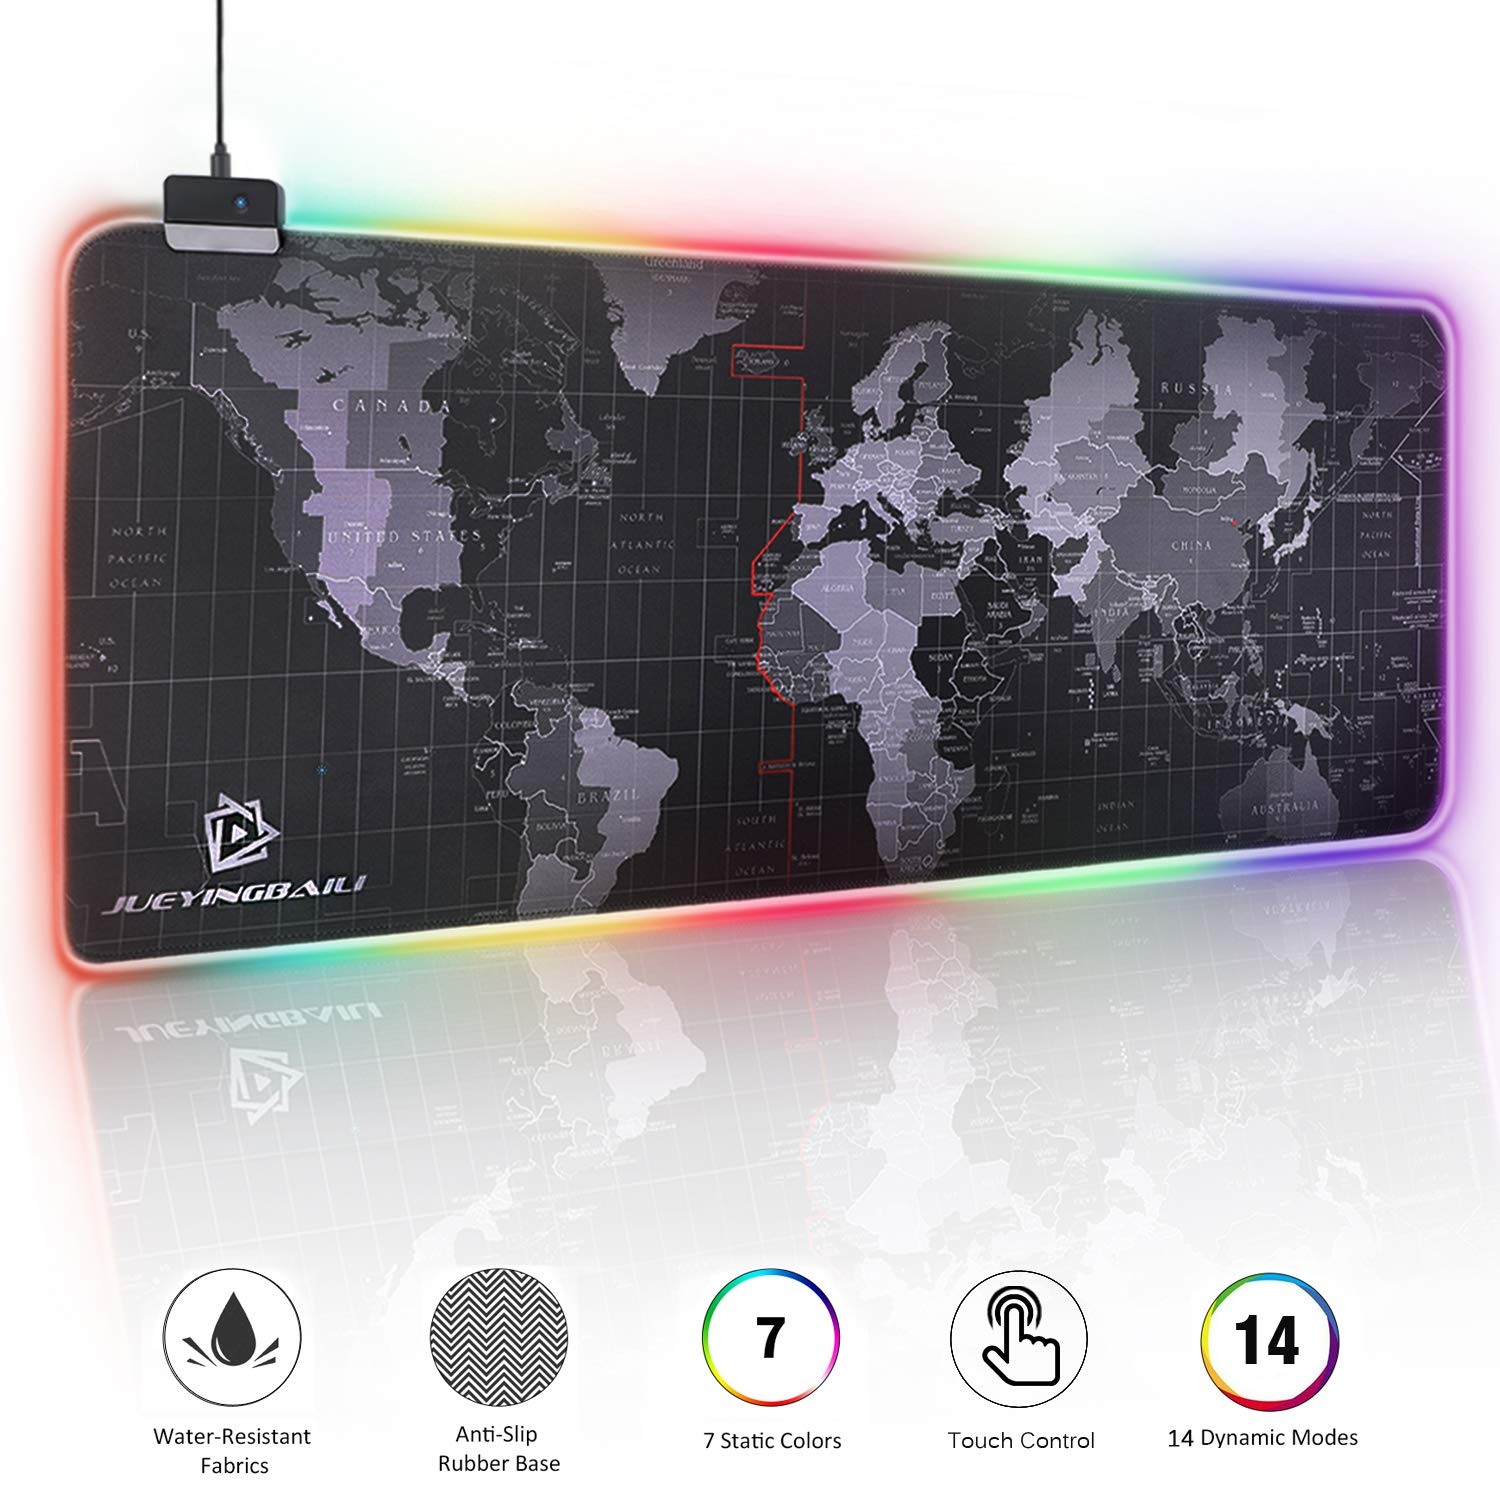 RGB Gaming Mouse Pad - Large Cool RGB Gaming Mouse Mat With Nylon Thread Stitched Edges & Smoothly Waterproof Non-Slip Rubber Base (31.5''X 11.8'' with 14 Light Modes) by JYZZ